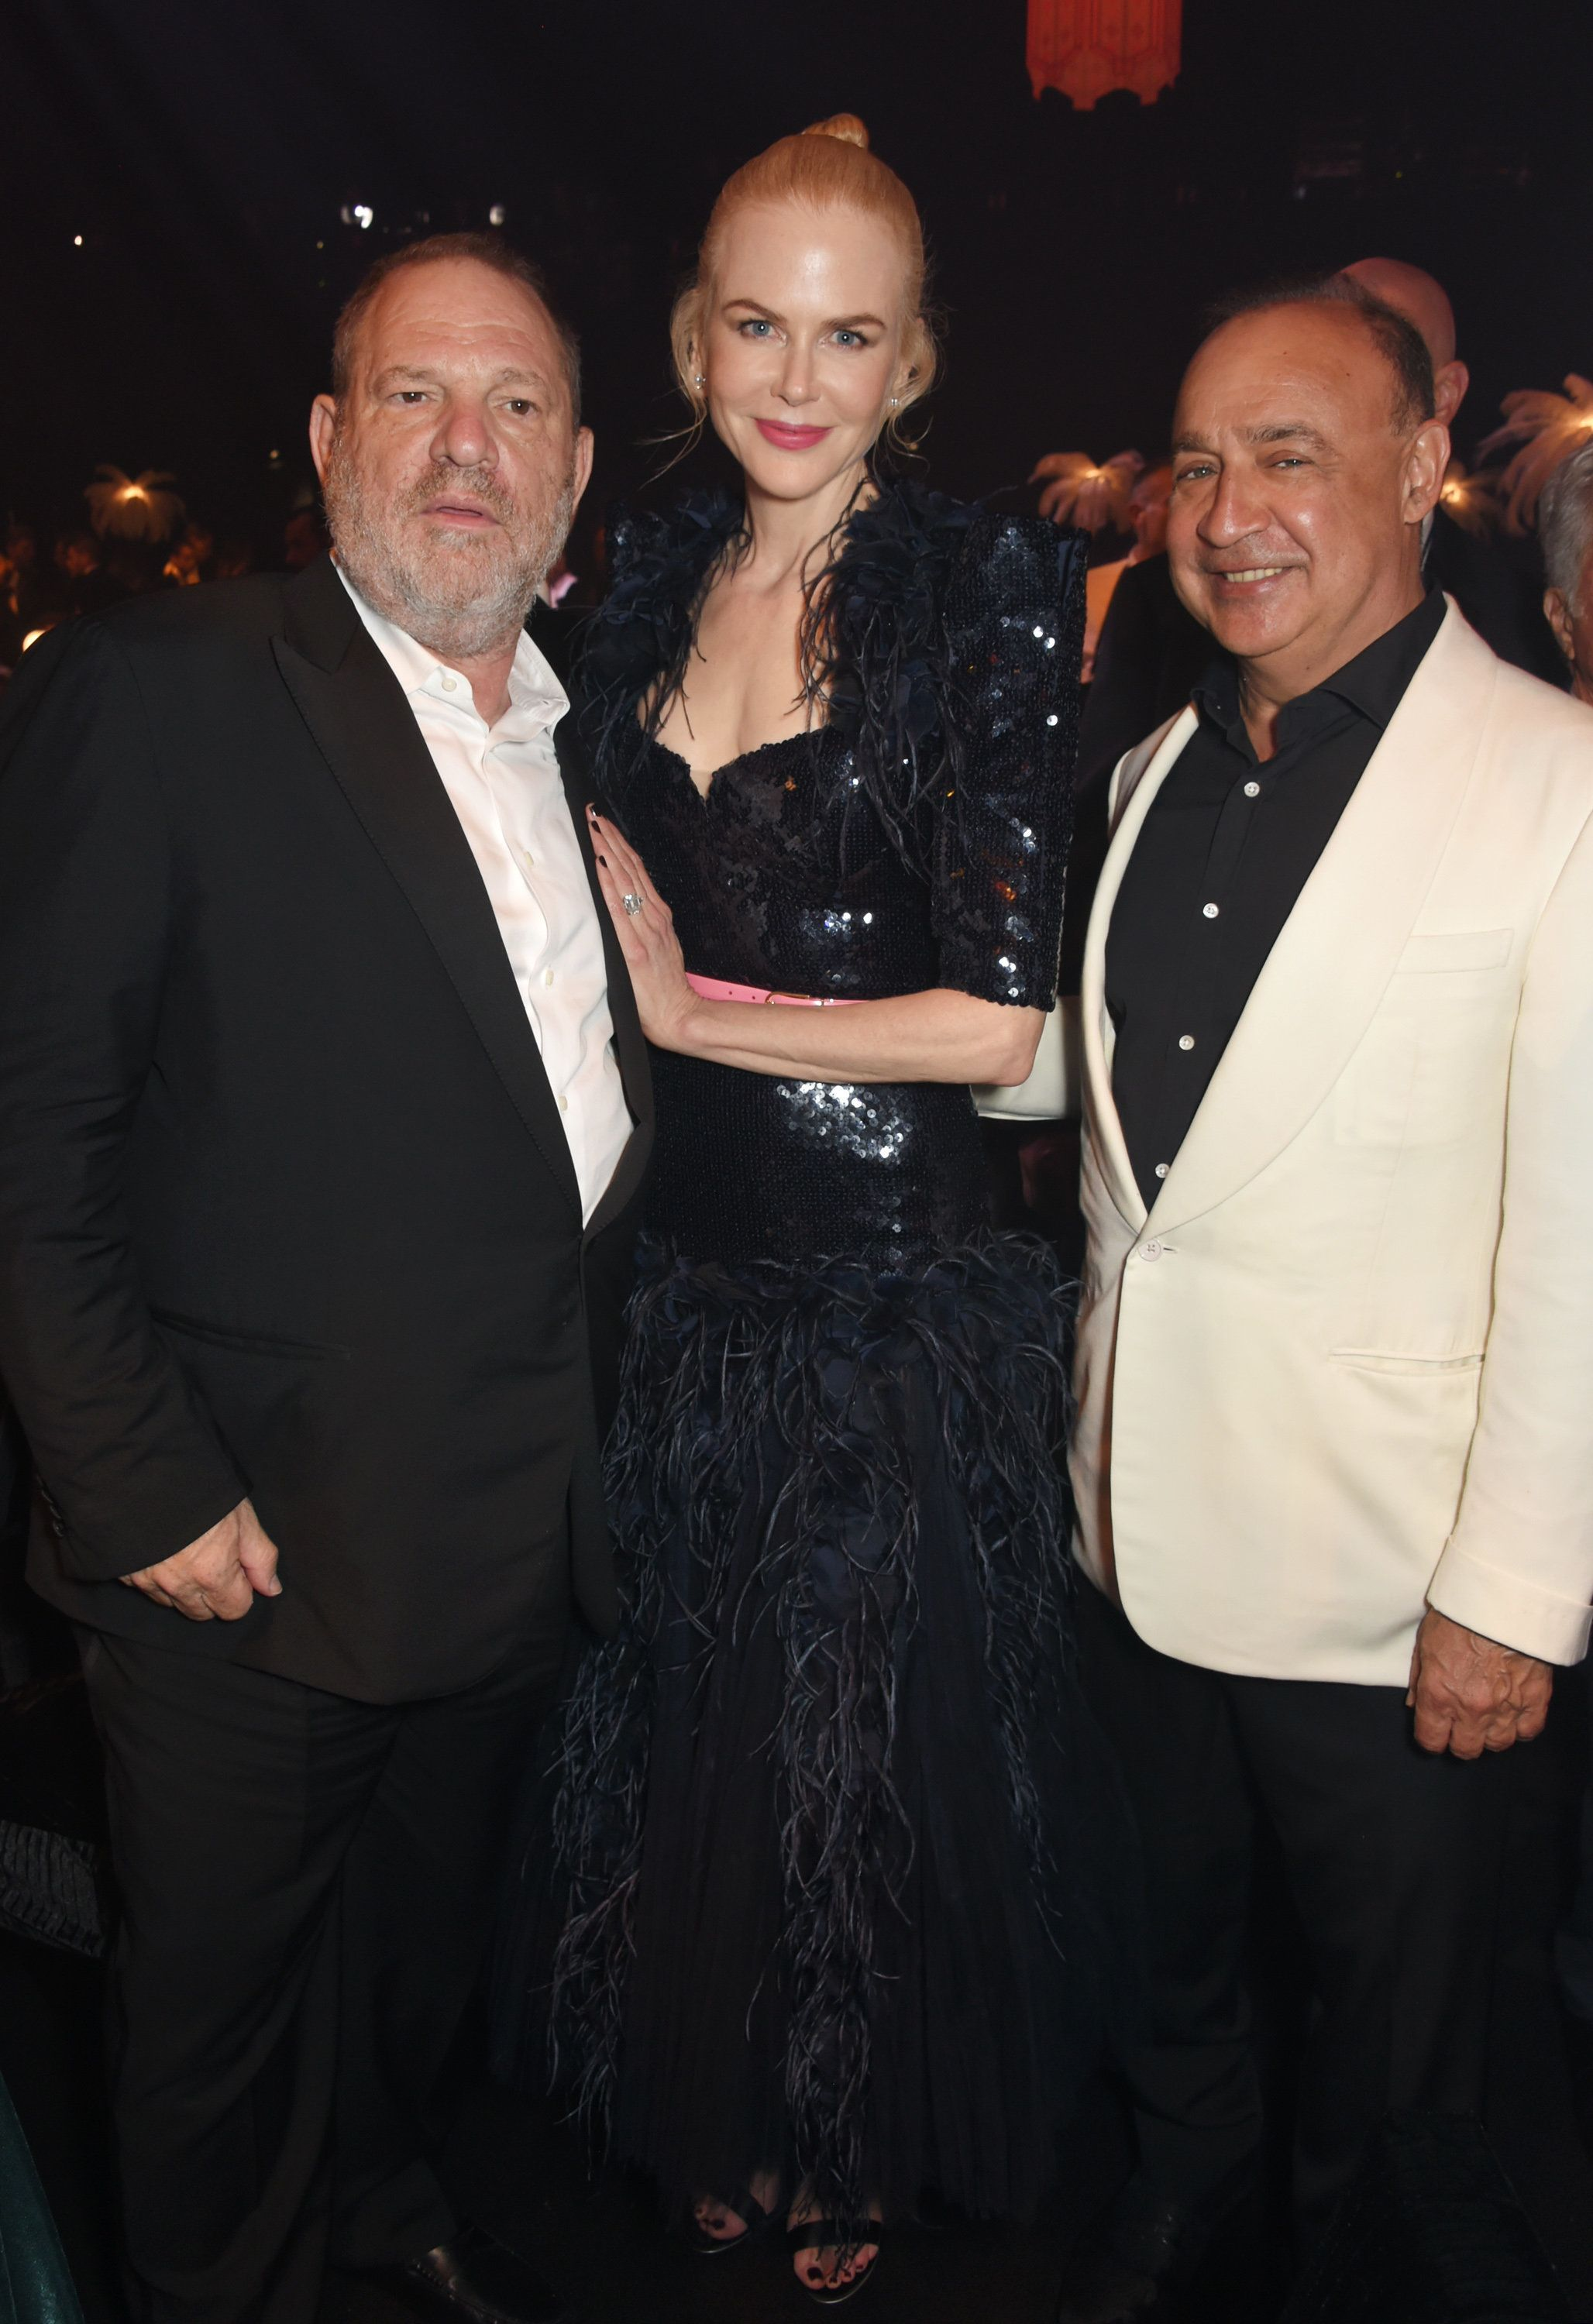 CAP D'ANTIBES, FRANCE - MAY 25:  (L to R) Harvey Weinstein, Nicole Kidman and Len Blavatnik attends the amfAR Gala Cannes 2017 at Hotel du Cap-Eden-Roc on May 25, 2017 in Cap d'Antibes, France.  (Photo by Dave Benett/amfAR2017/Dave Benett/WireImage for amfAR   )